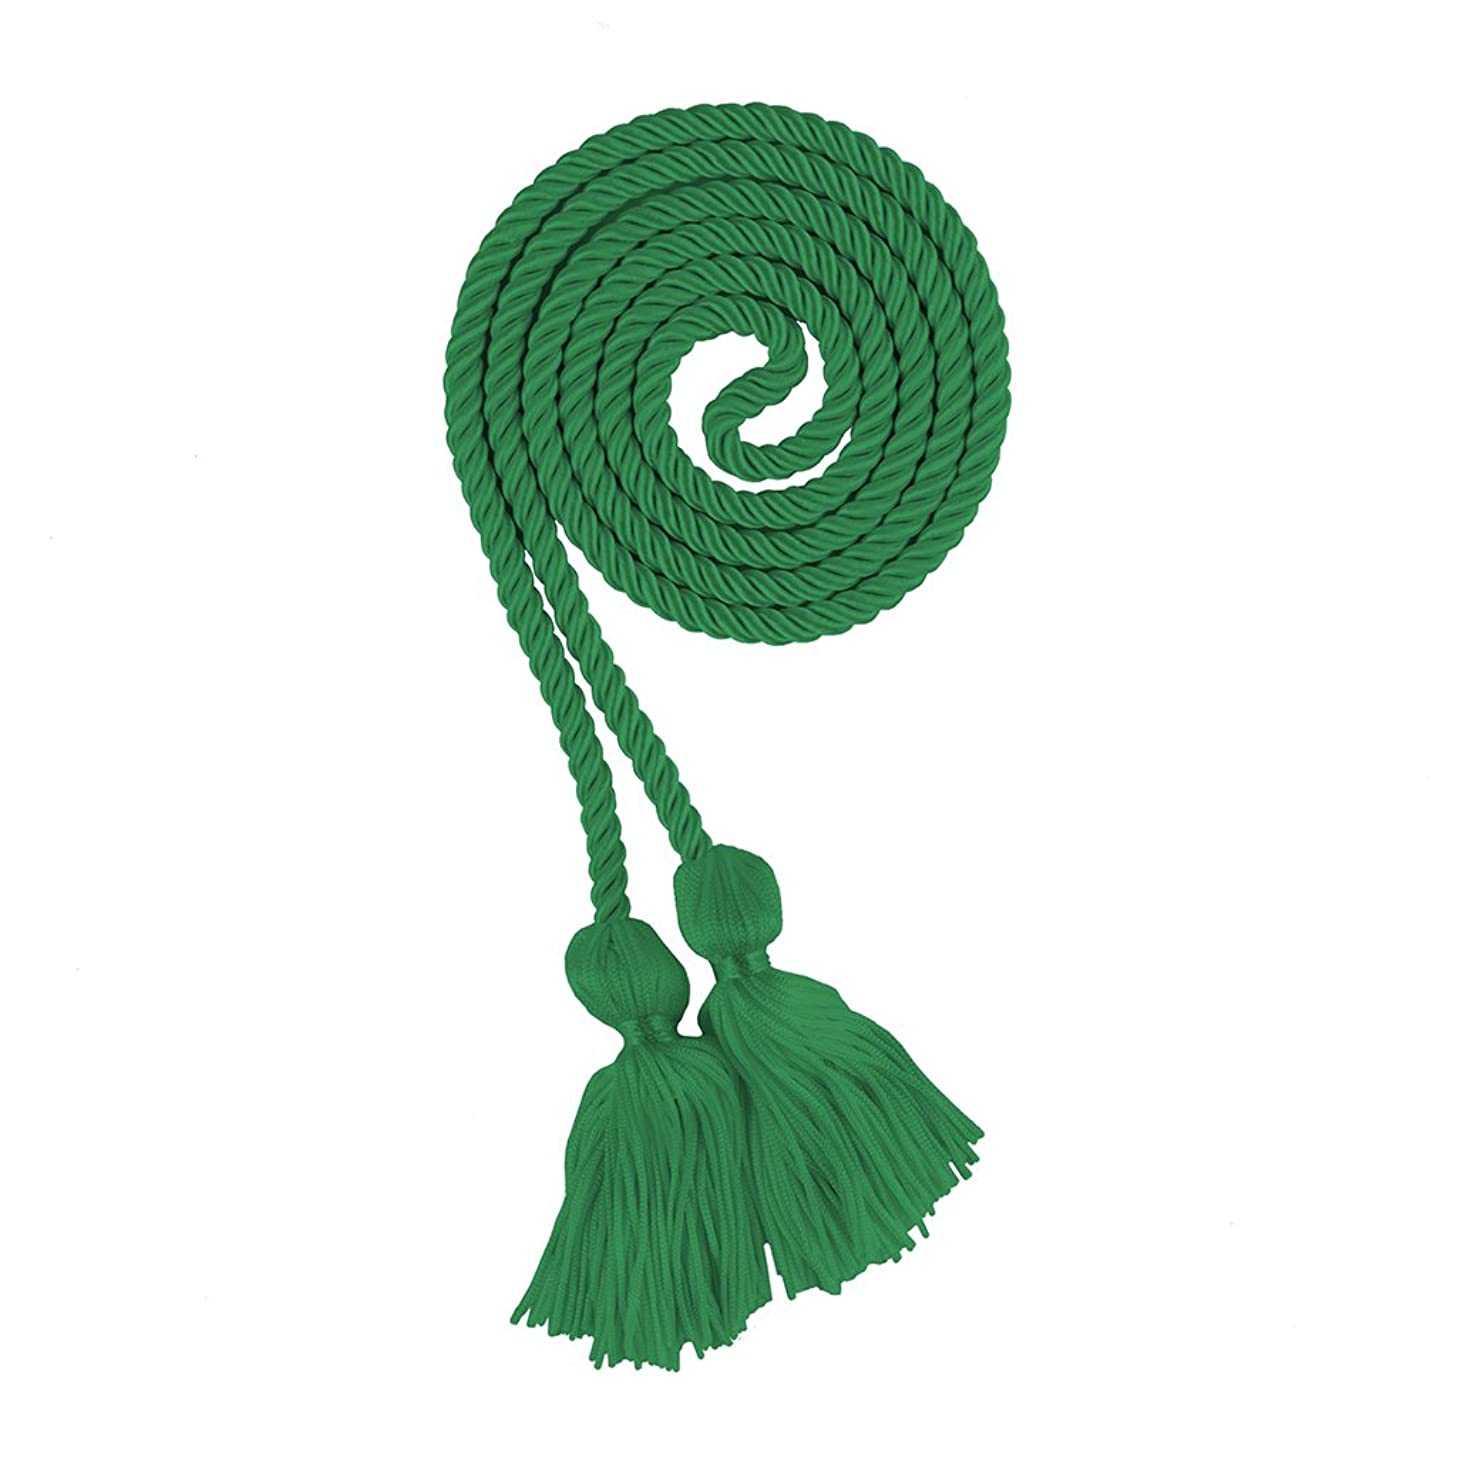 Honor Cords Academic Apparel (Kelly Green) gaxexg7967899